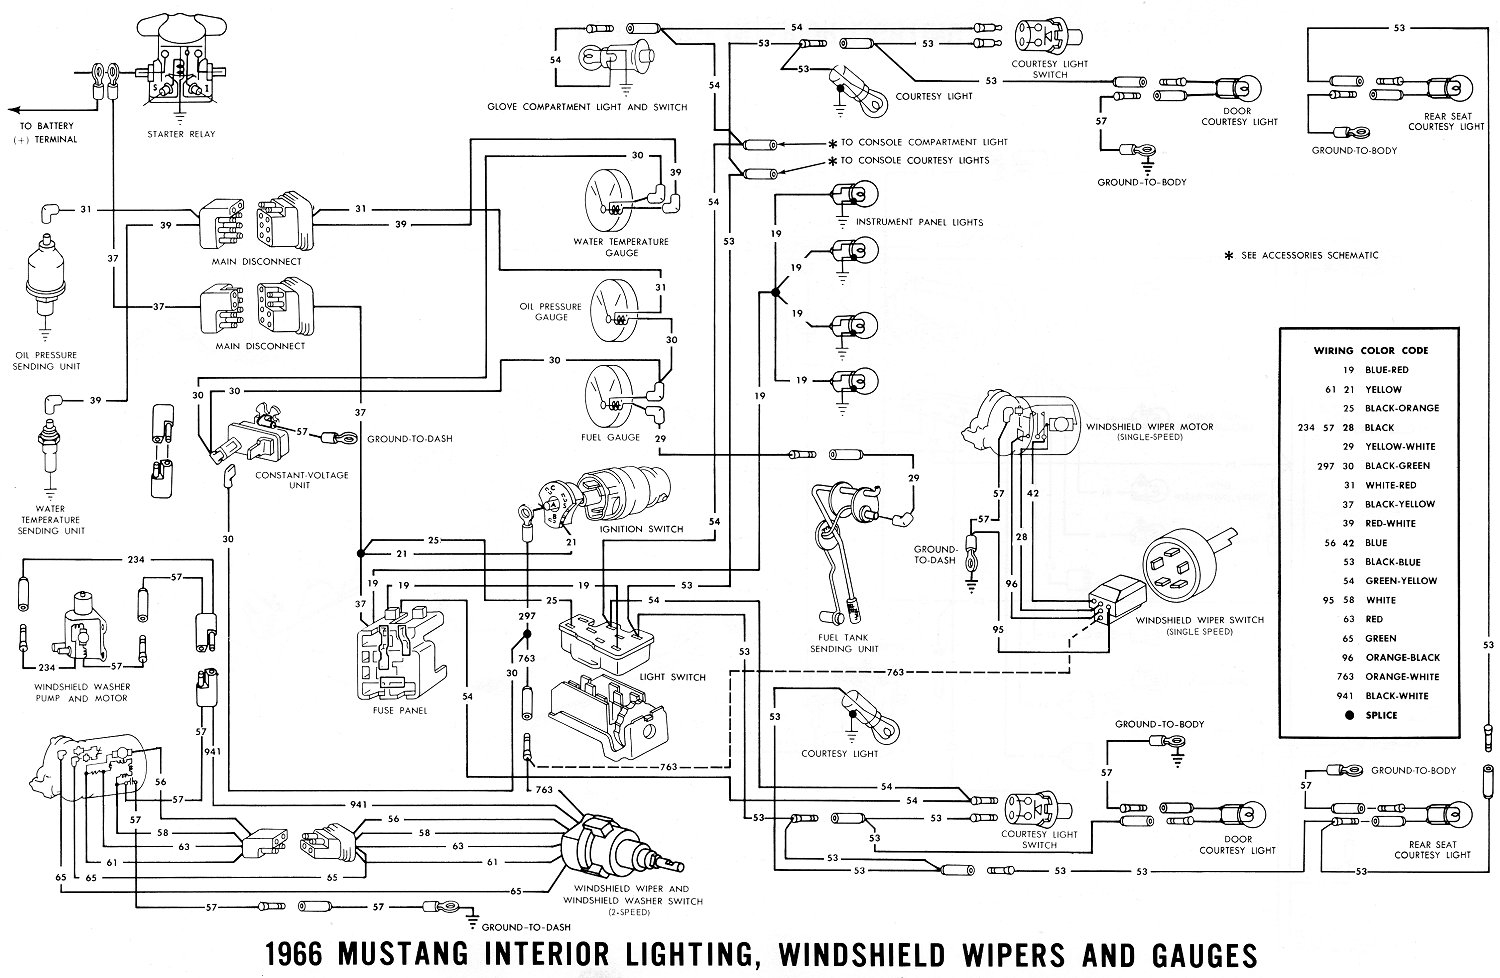 1965 ford mustang wiring diagram Collection-vintage mustang wiring diagrams rh midlife66 1967 Mustang Ignition Wiring Diagram 1968 mustang wiring diagram 16-a